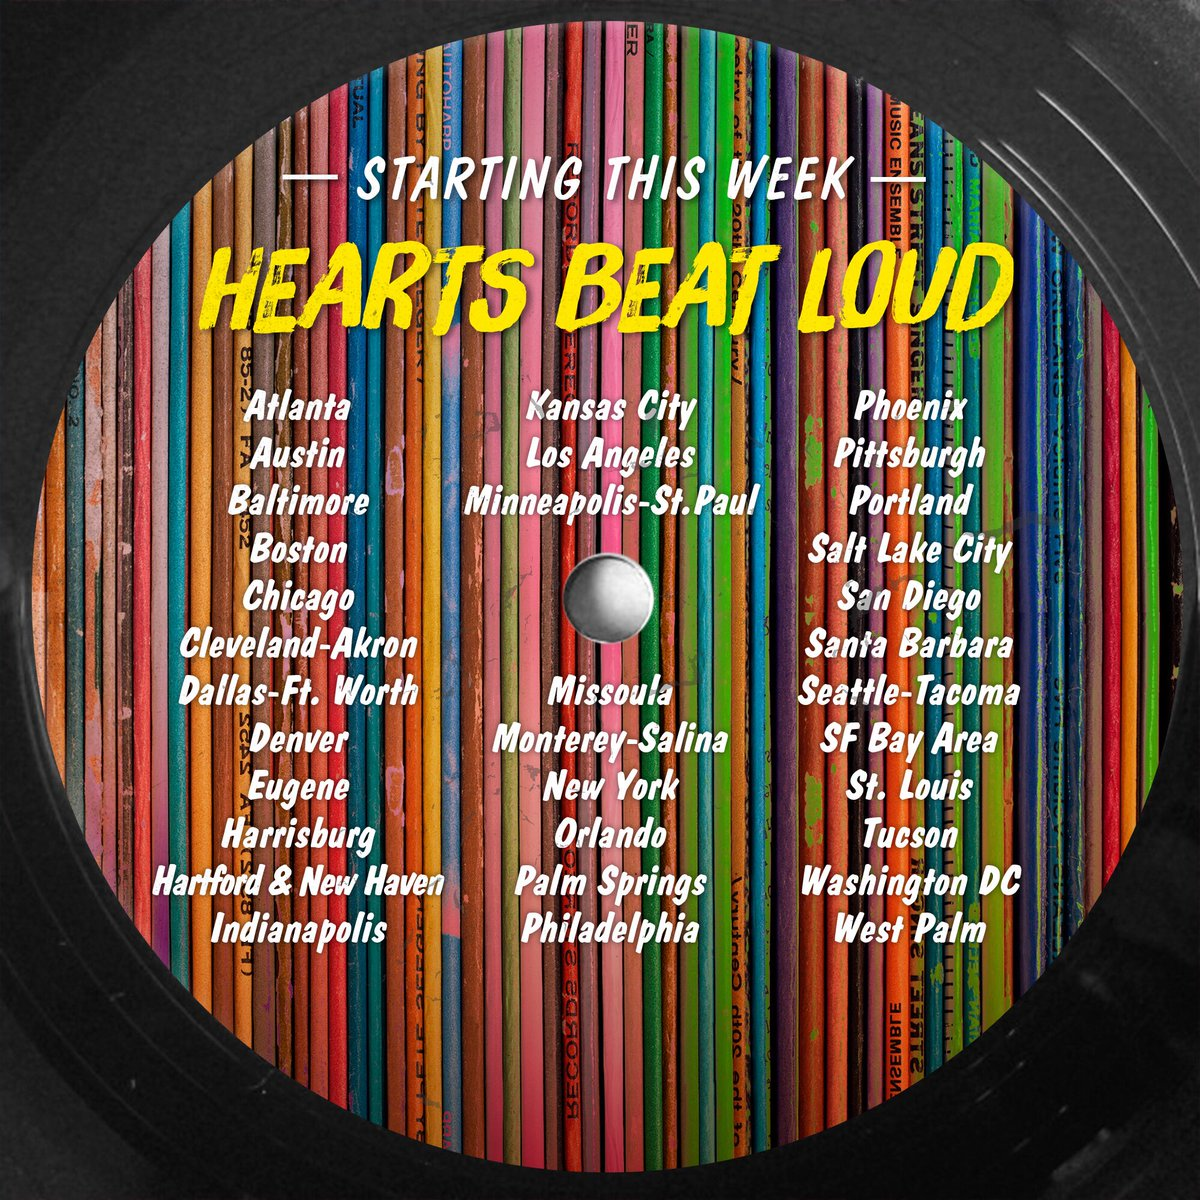 Here is some big news in the field of medicine and heart. New cities for @heartsbeatloud